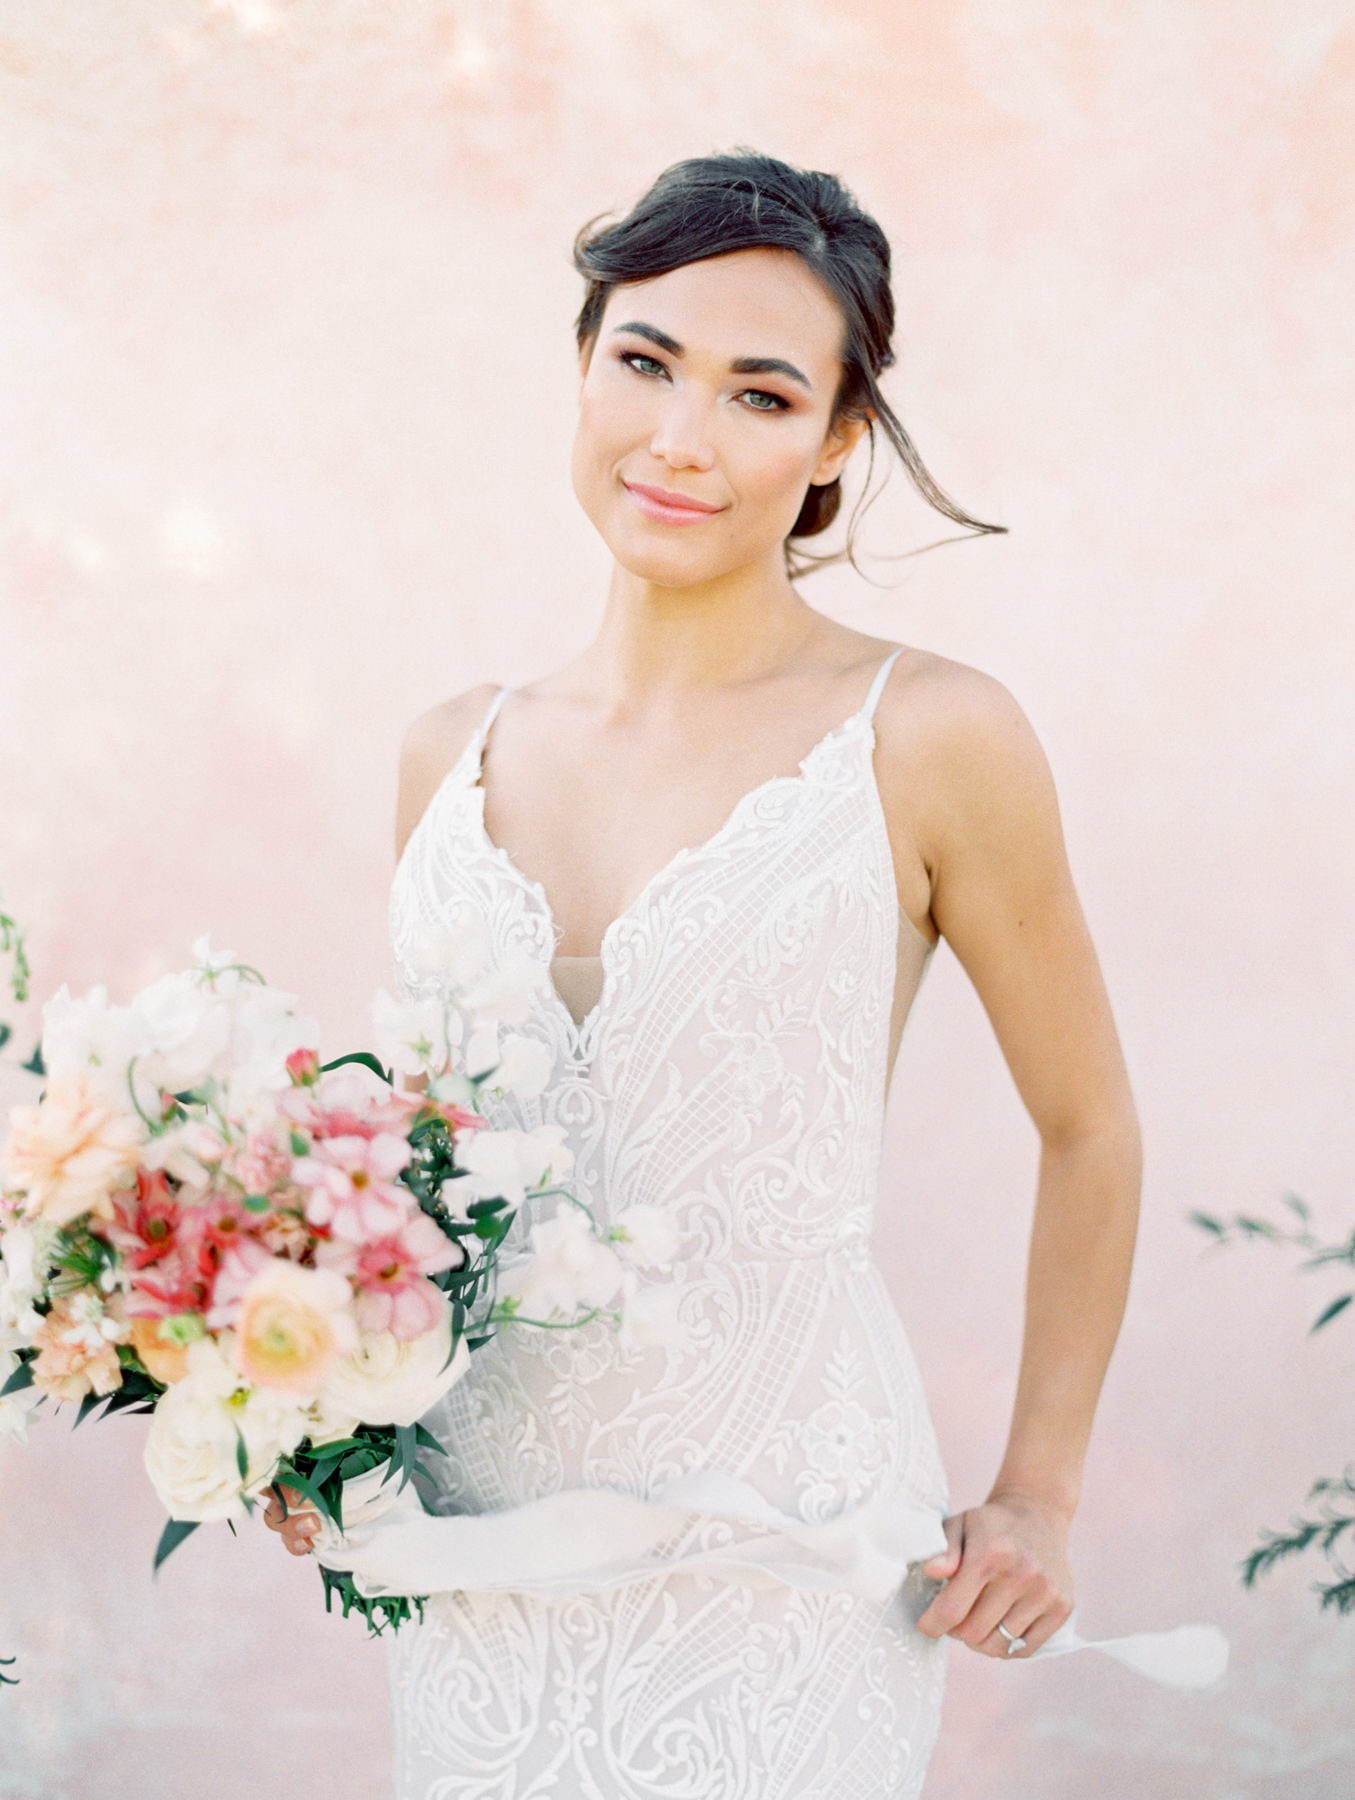 Bridal bouquet with ivory, pink, peach, carnations, roses, ranunculus, sweet peas, and greenery. Hayley Paige Zazu gown from The White Flower. Cavin Elizabeth Photography - film photographer in San Diego.